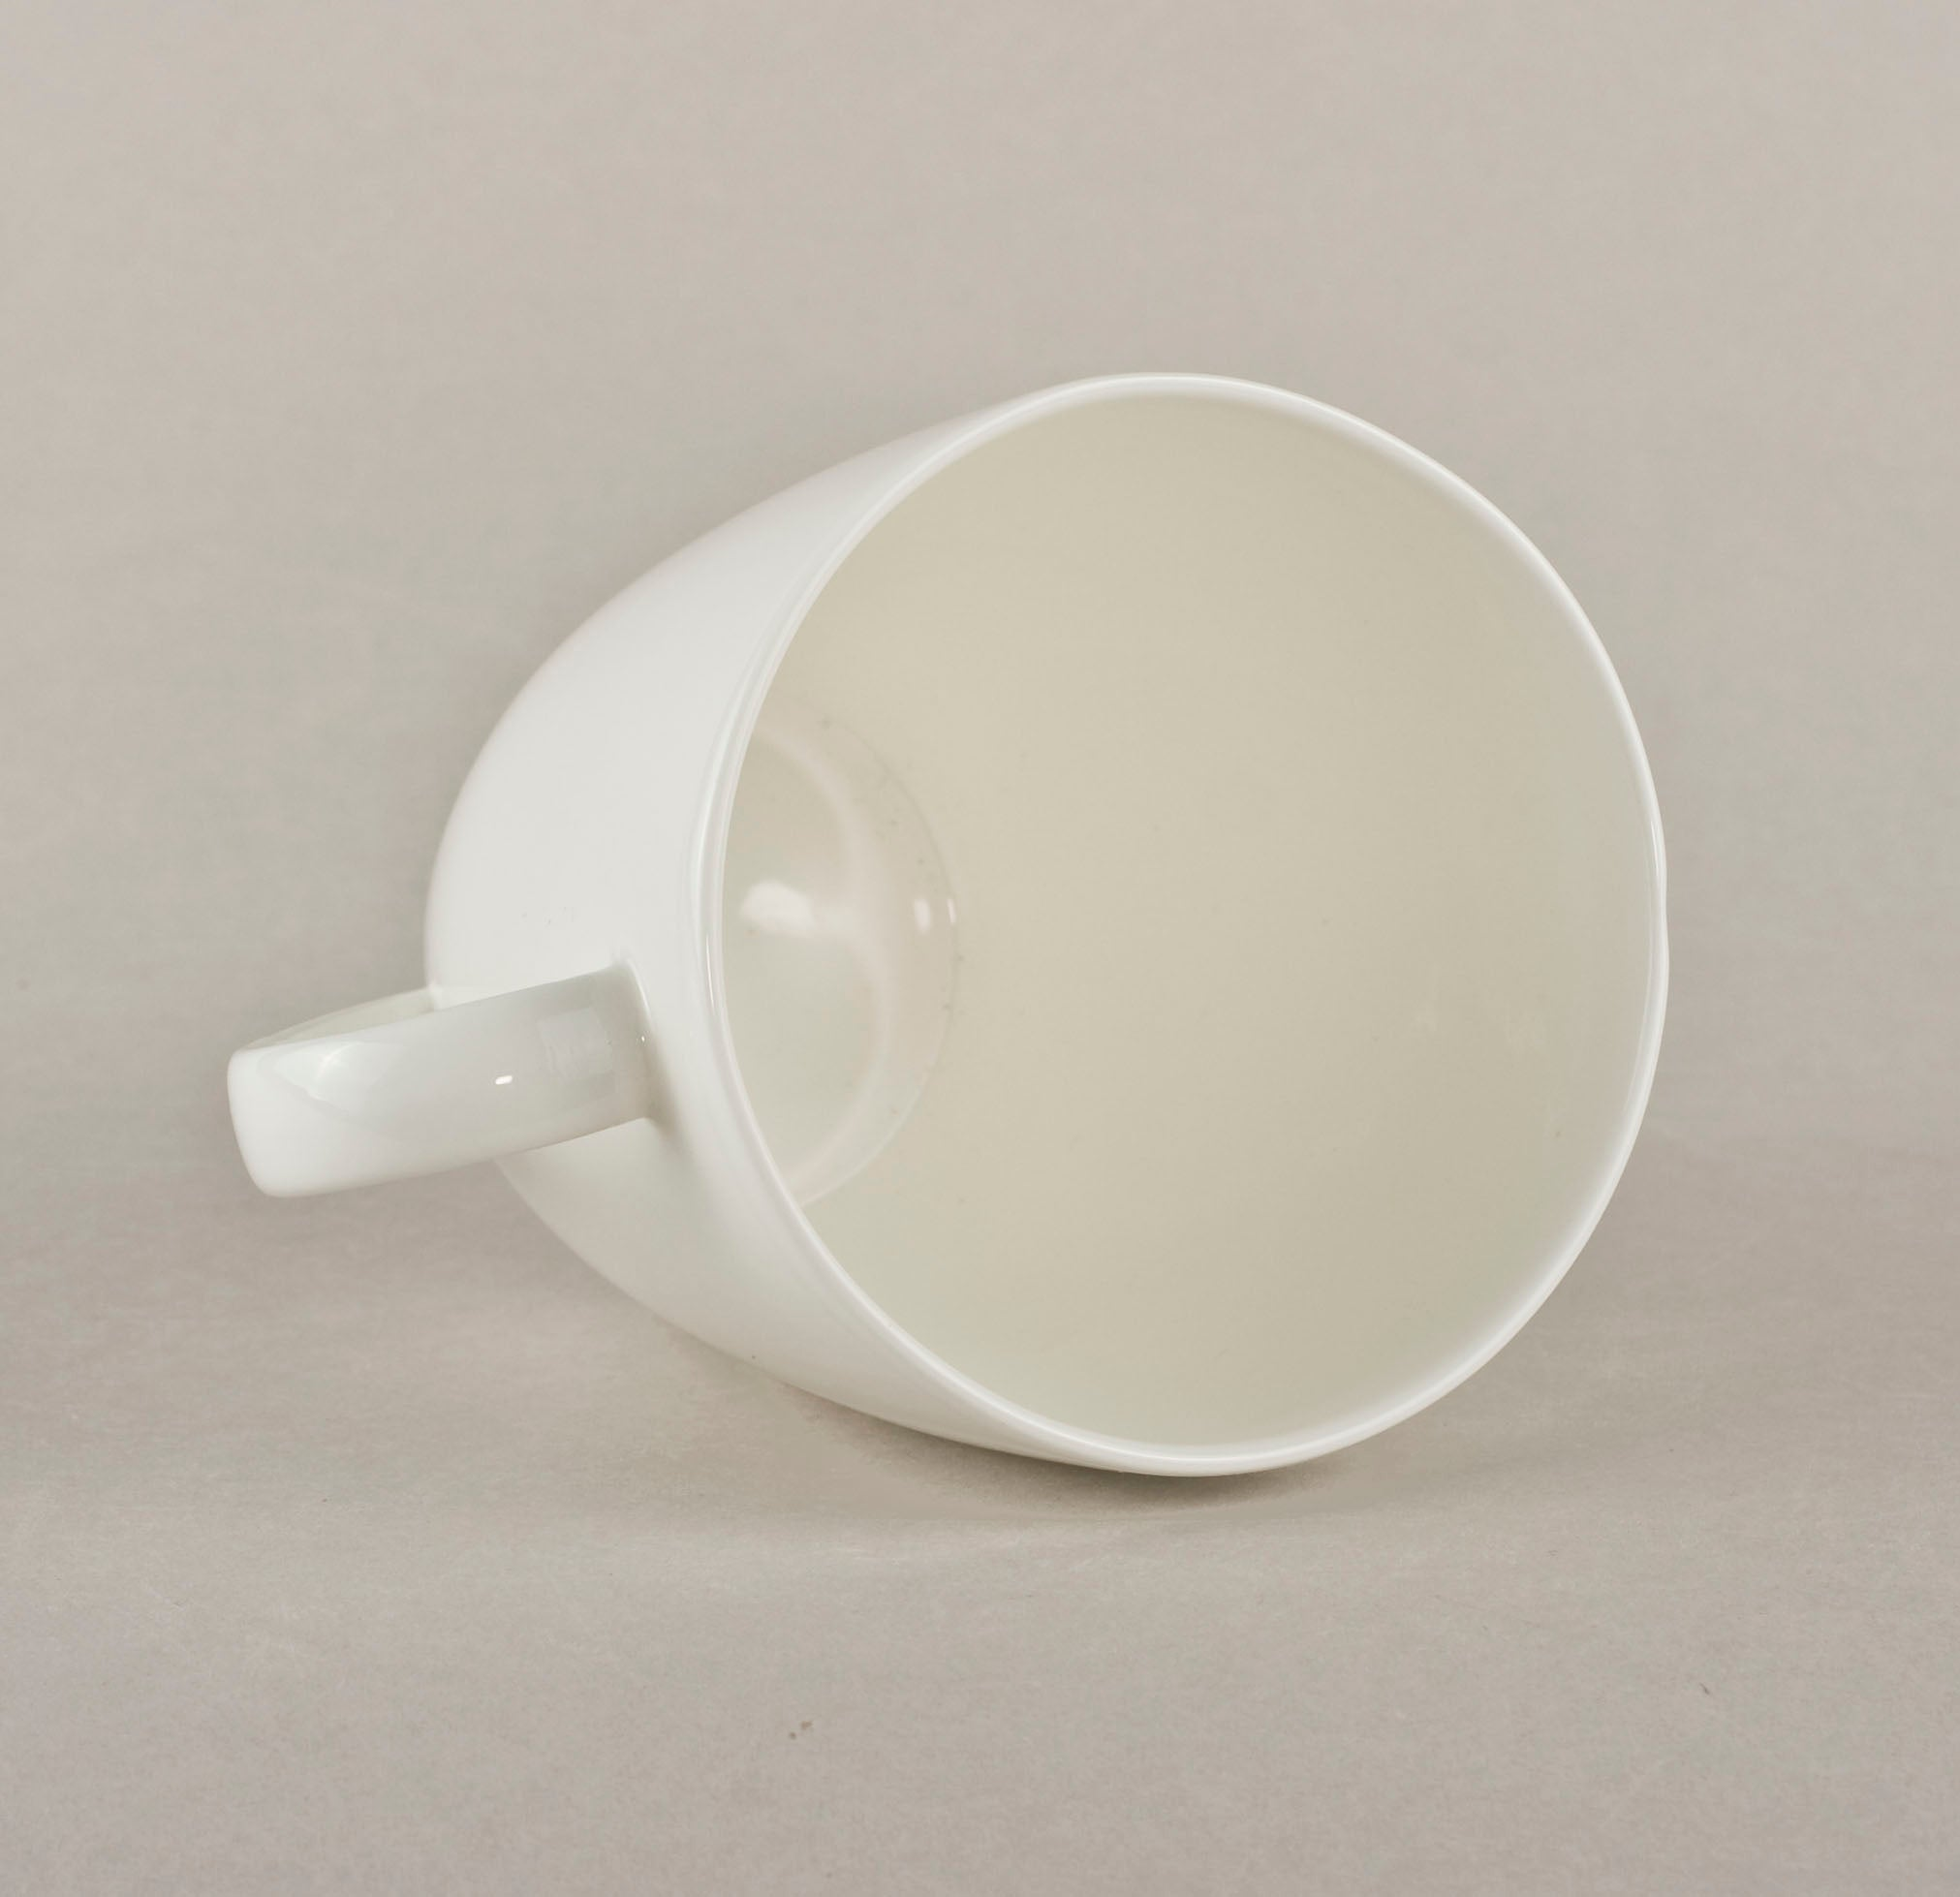 Porcelain Smooth Mug